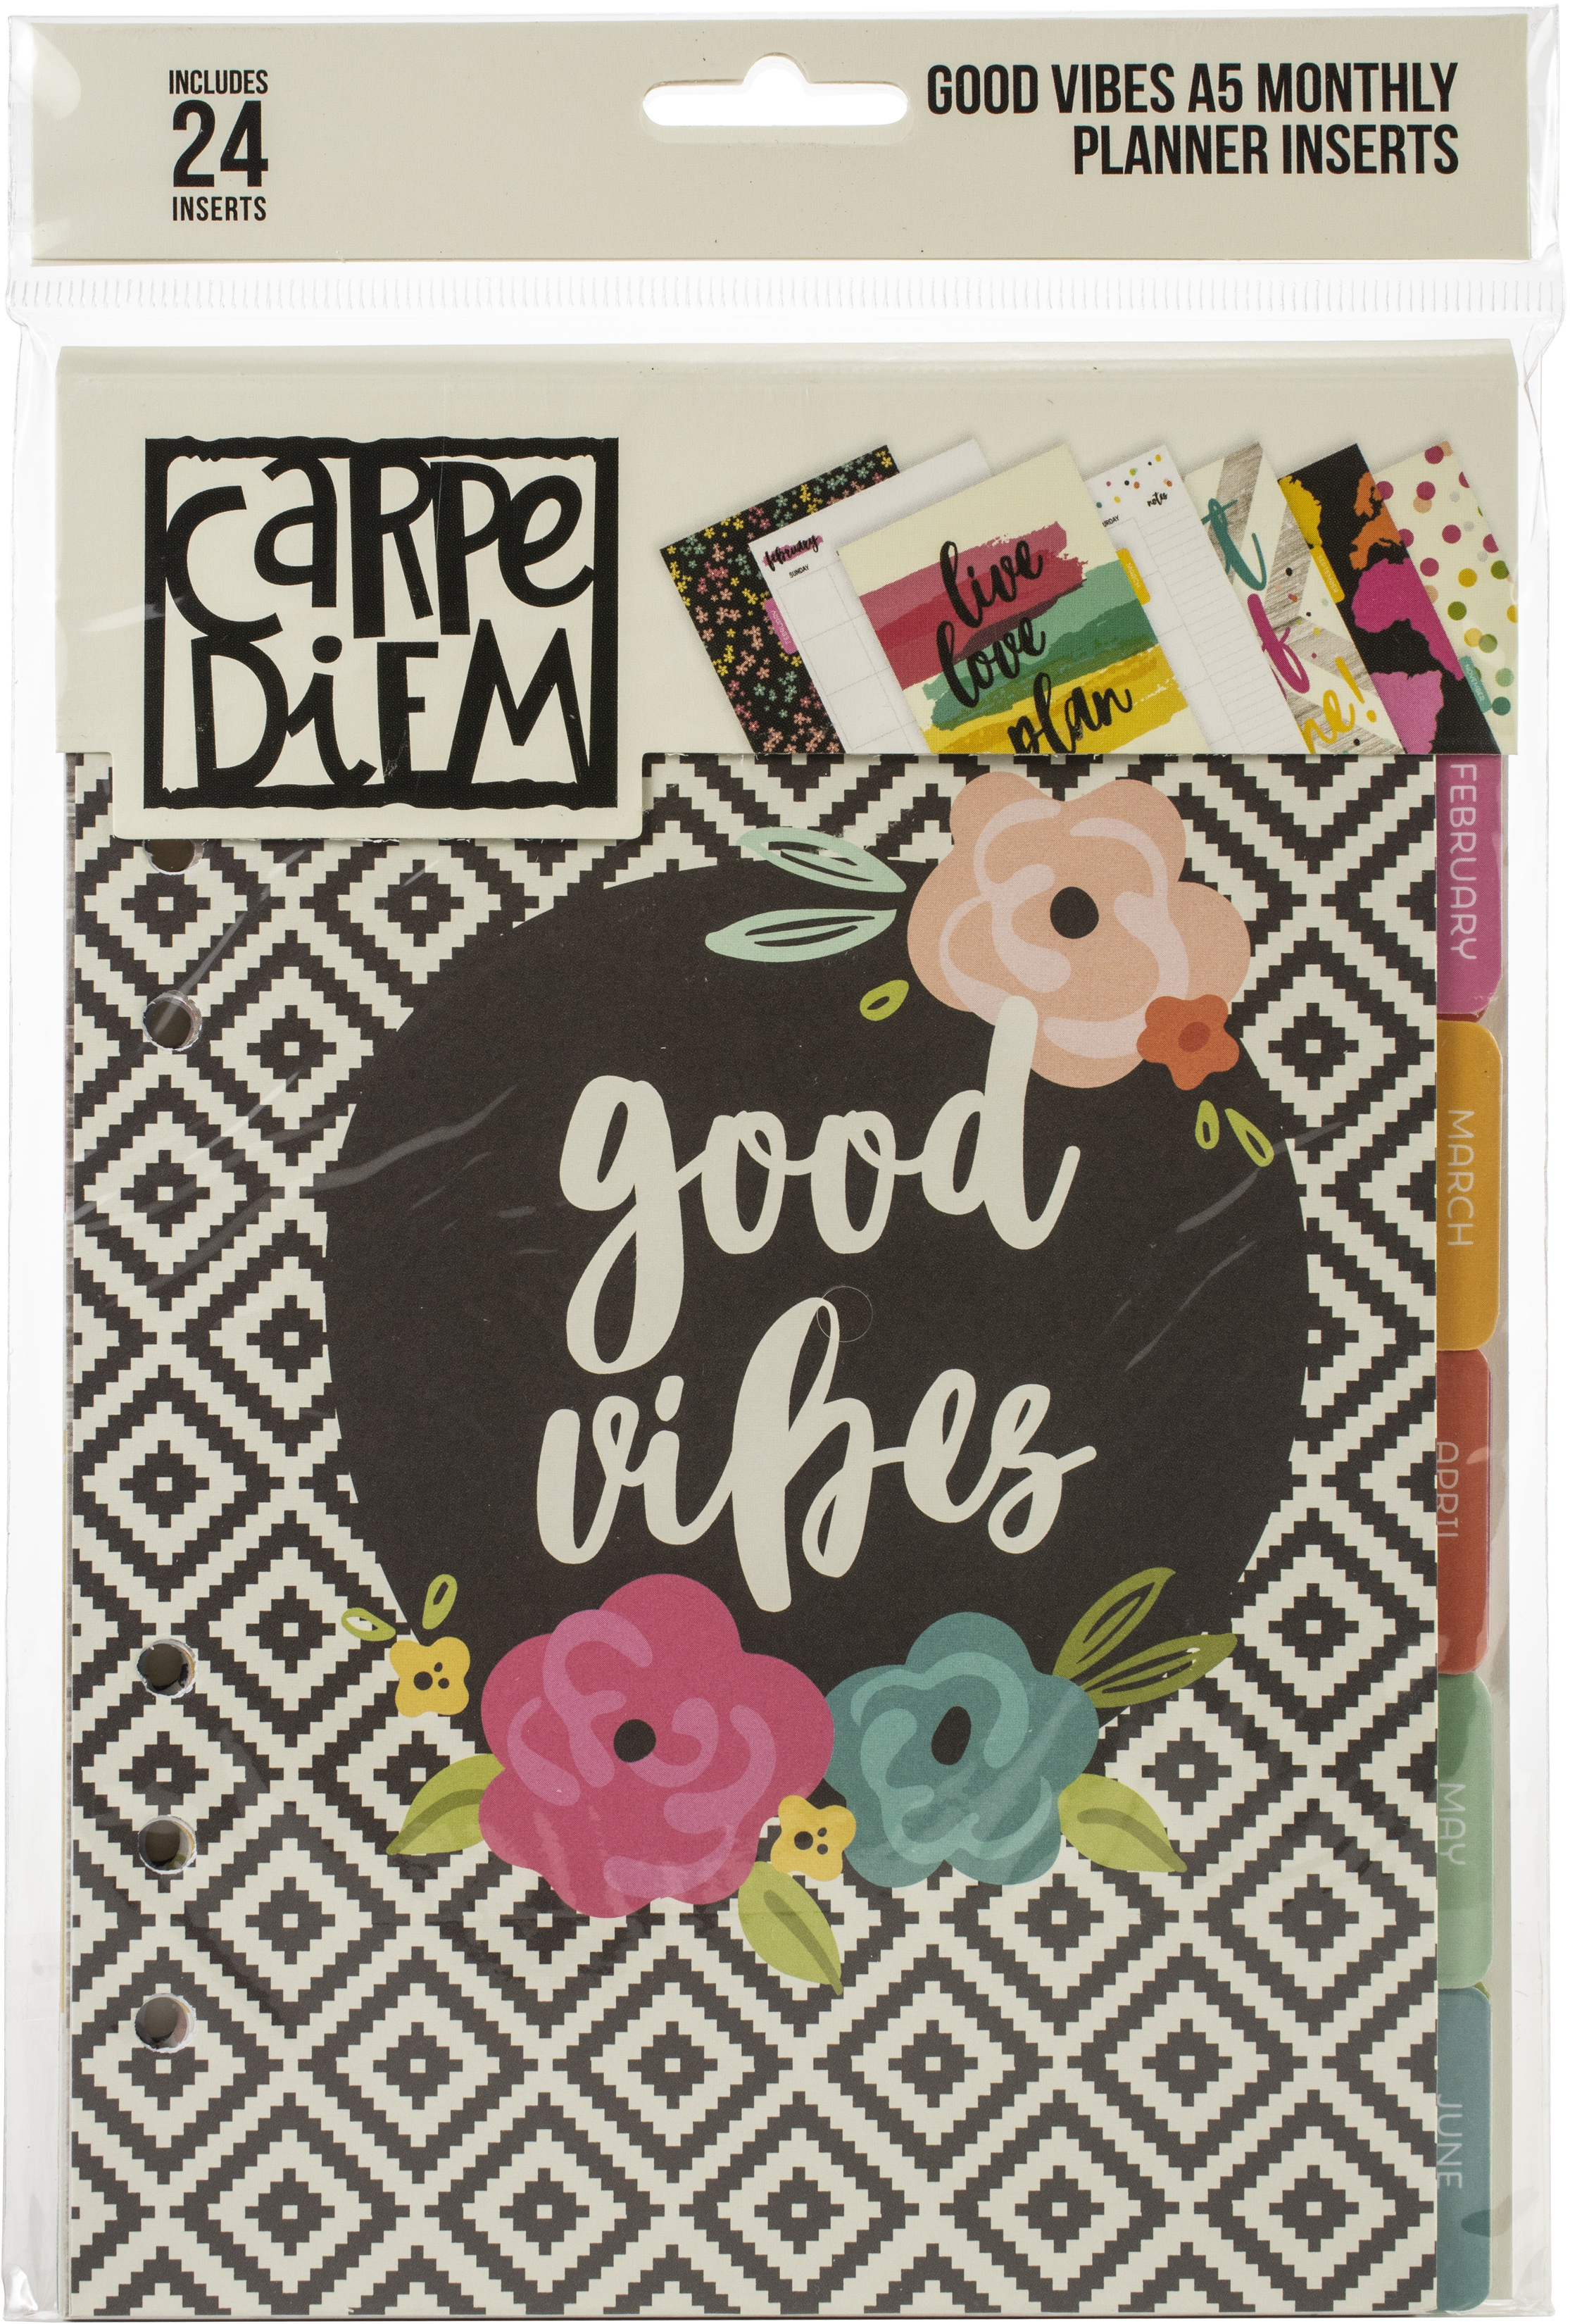 GOOD VIBES-CARPE DIEM A5 INSERT